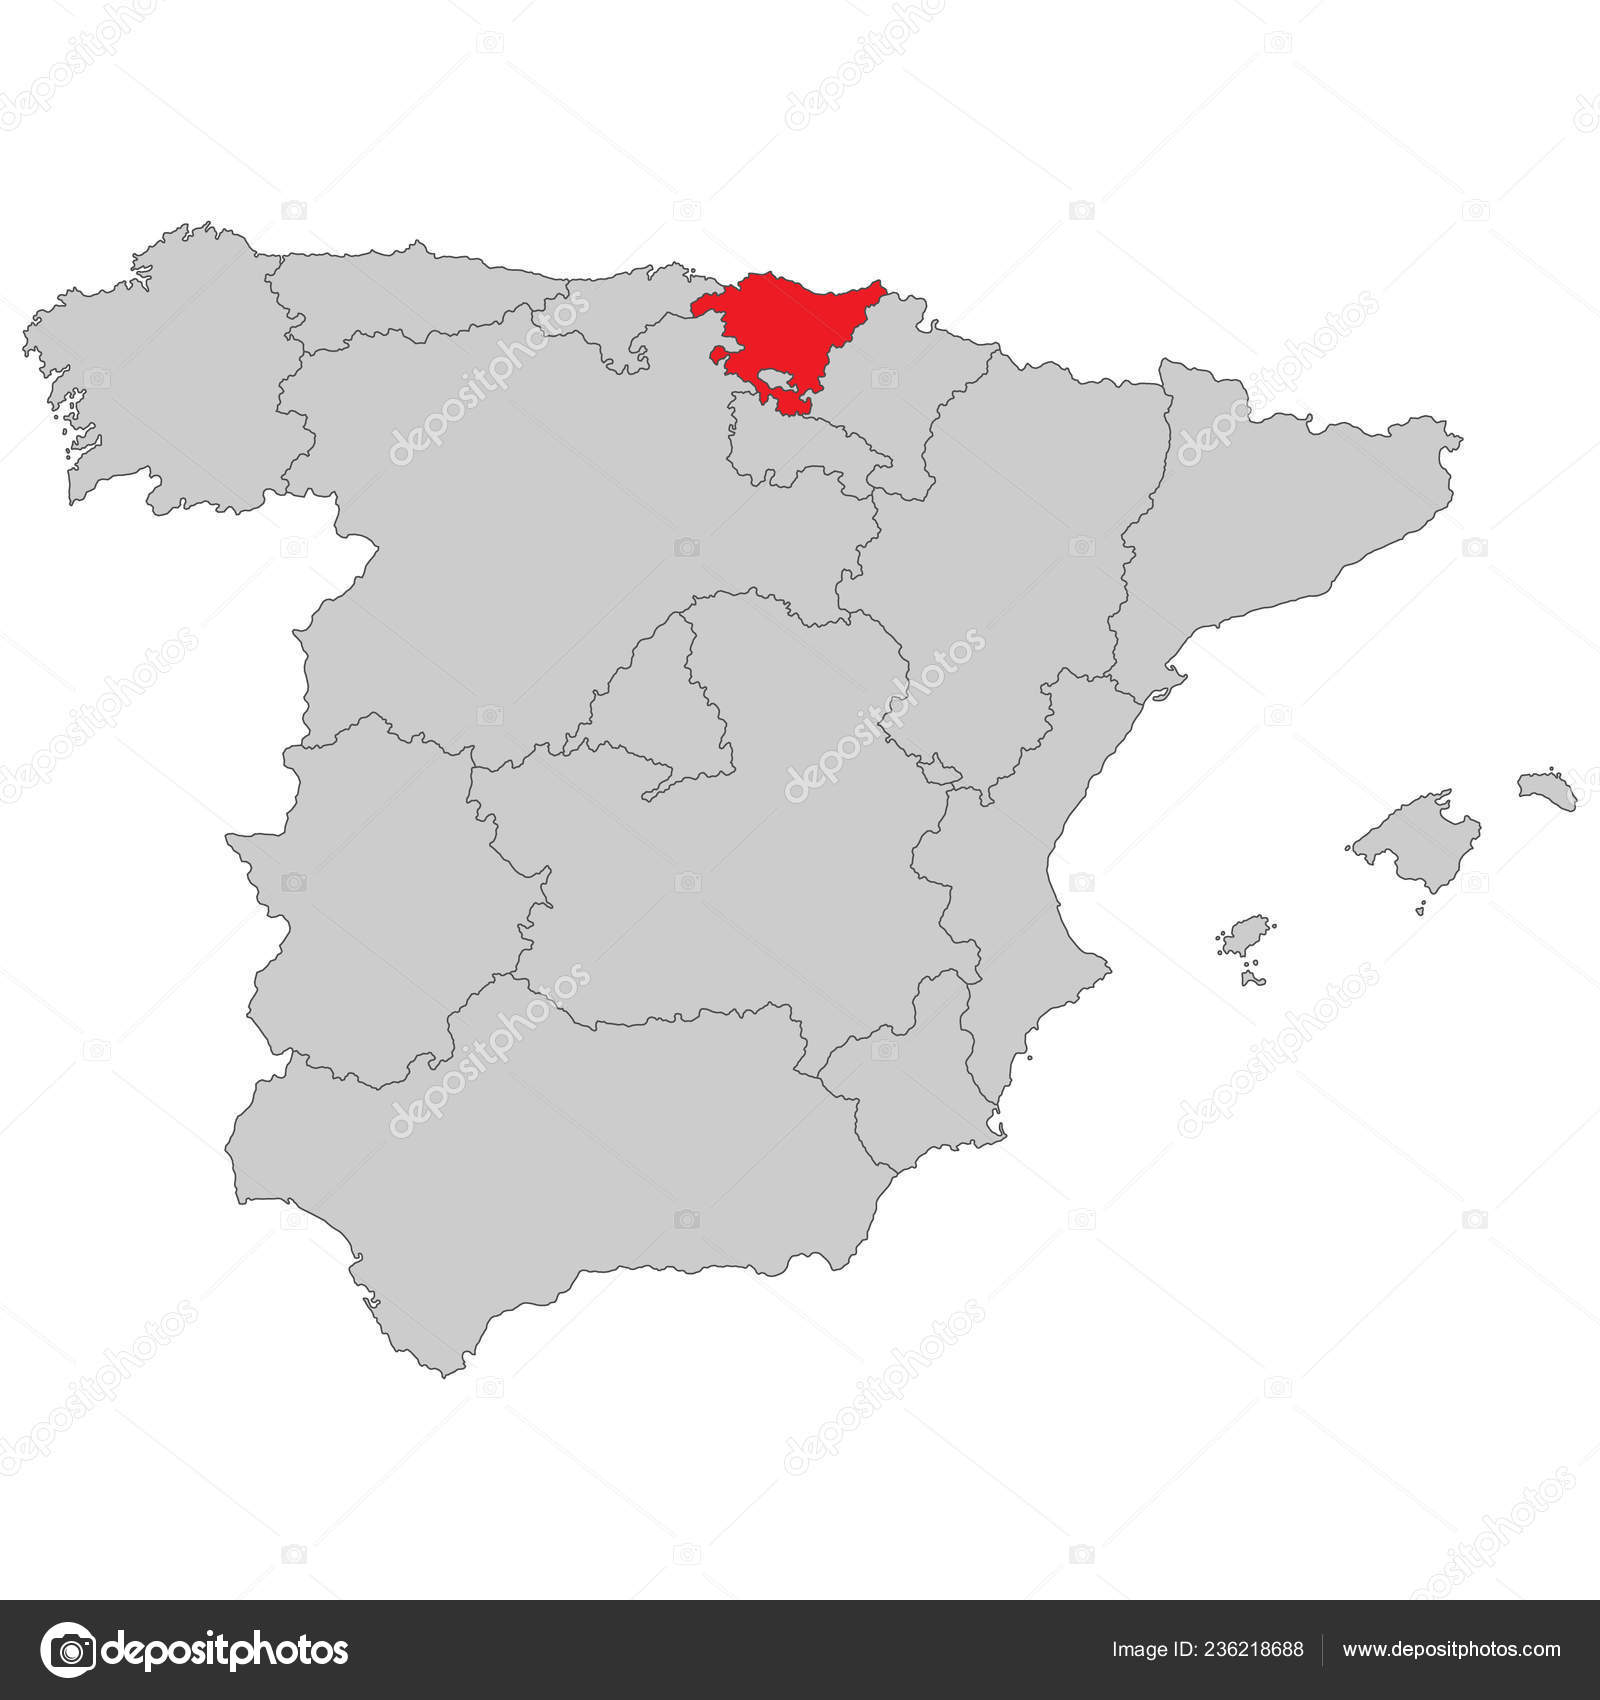 Basque Map Of Spain.Spain Map Spain Basque Country High Detailed Stock Vector C Ii